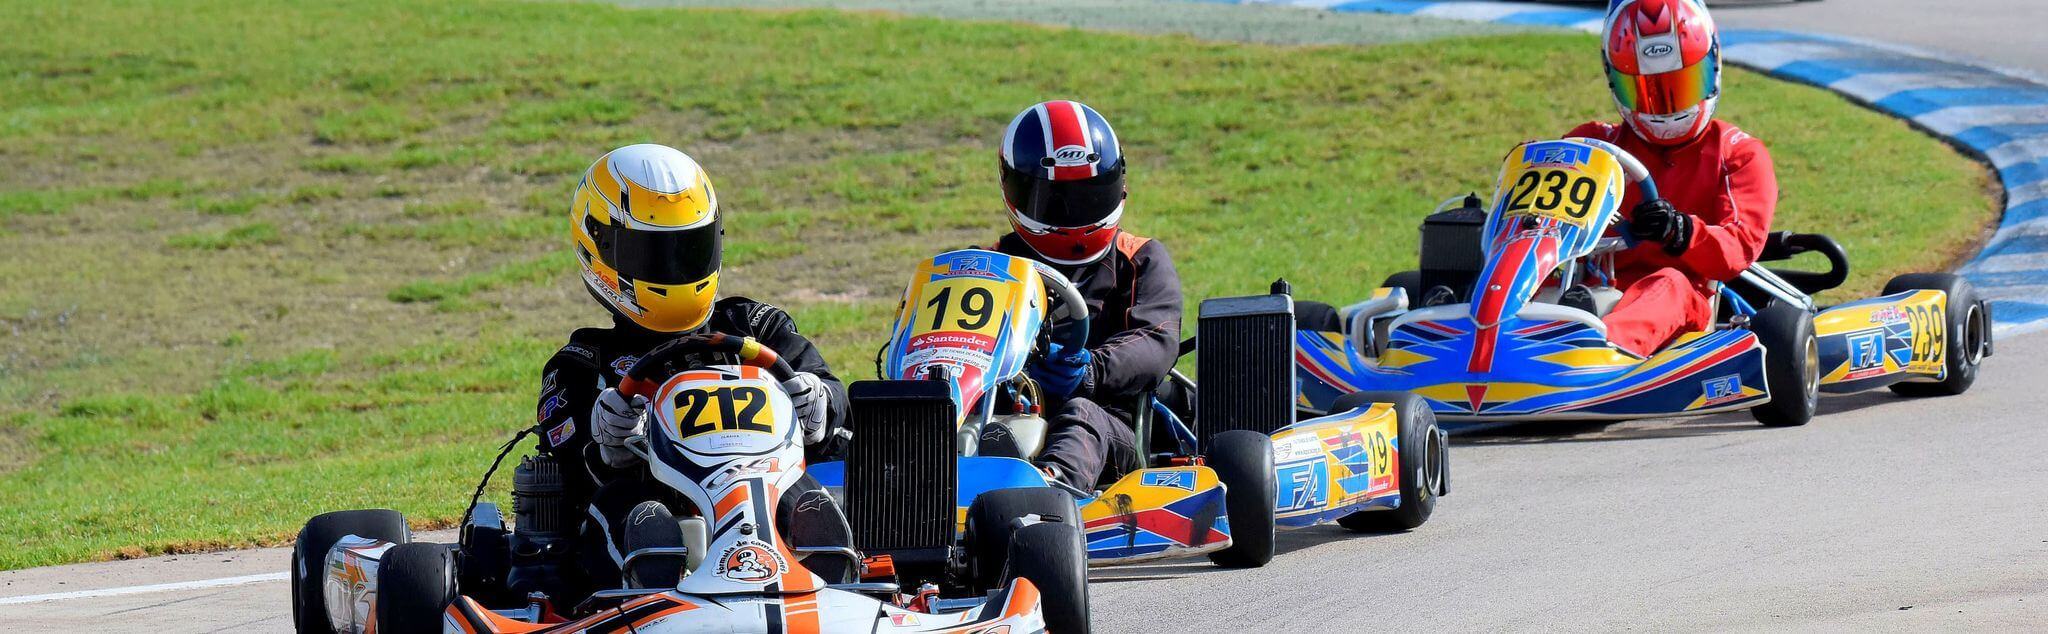 Karting in Cornwall